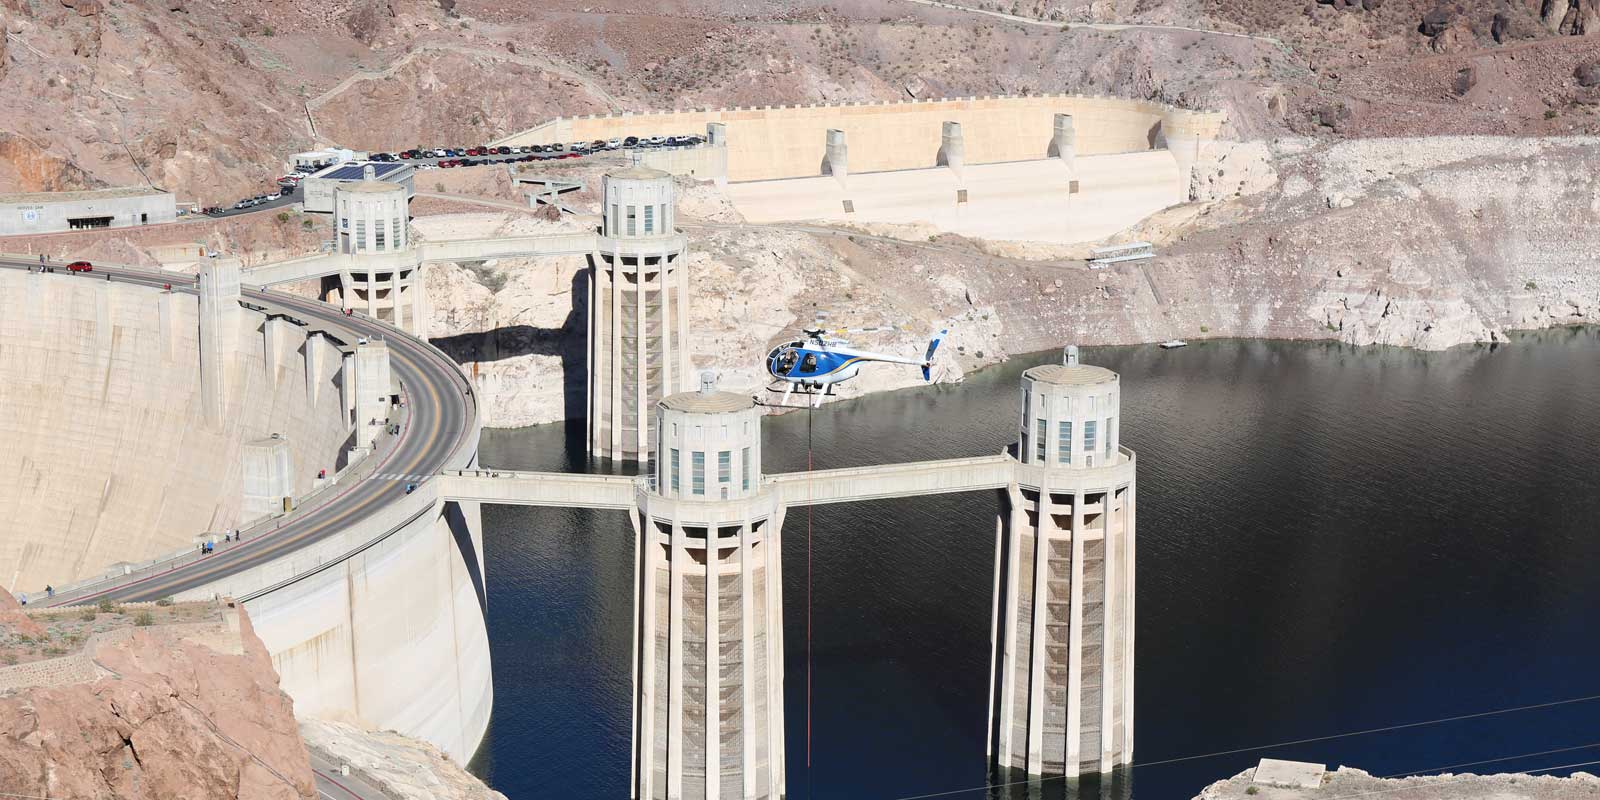 Photo of a helicopter hovering over the Hoover Dam Intake Tower Bridge.